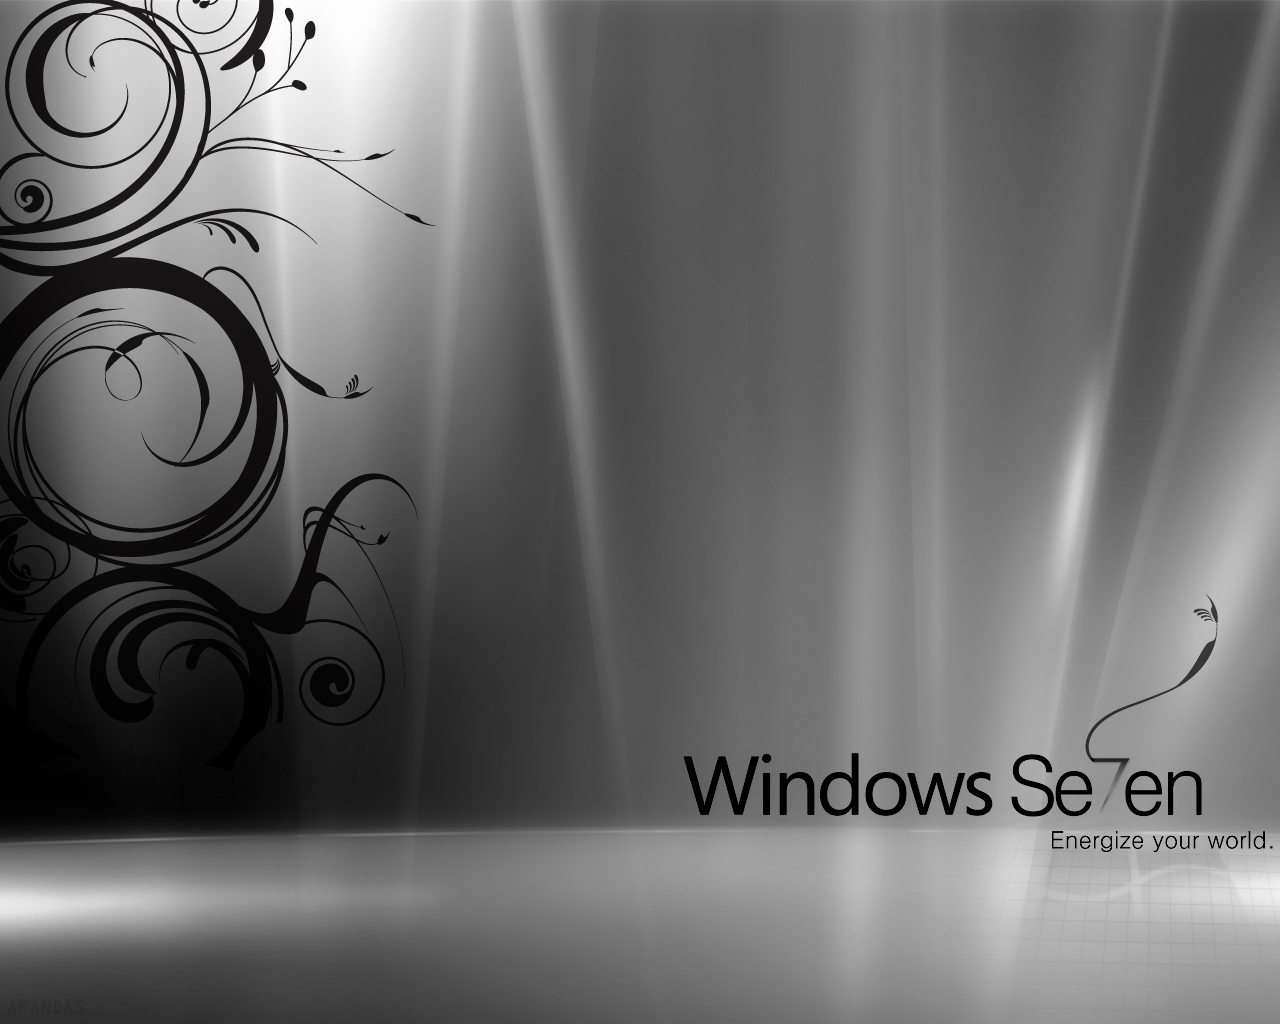 Planos de fundo marcasplanos de fundo free in cio for Window settimeout